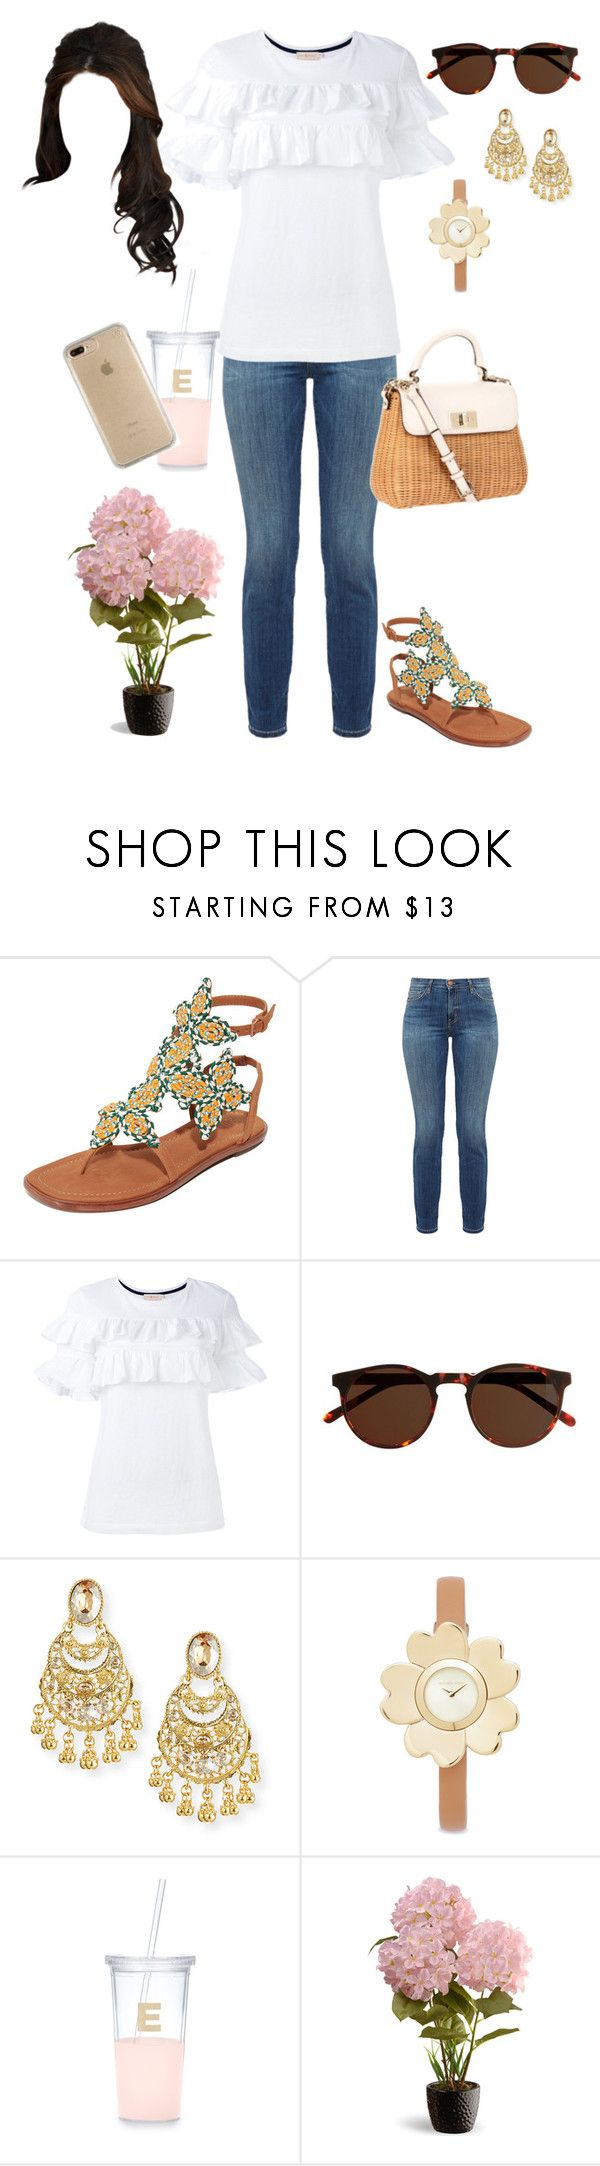 """""""Springtime"""" by lilymae1997 ❤ liked on Polyvore featuring Tory Burch, Current/Elliott, Kate Spade, J.Crew, Oscar de la Renta, Michael Kors, National Tree Company and Speck"""